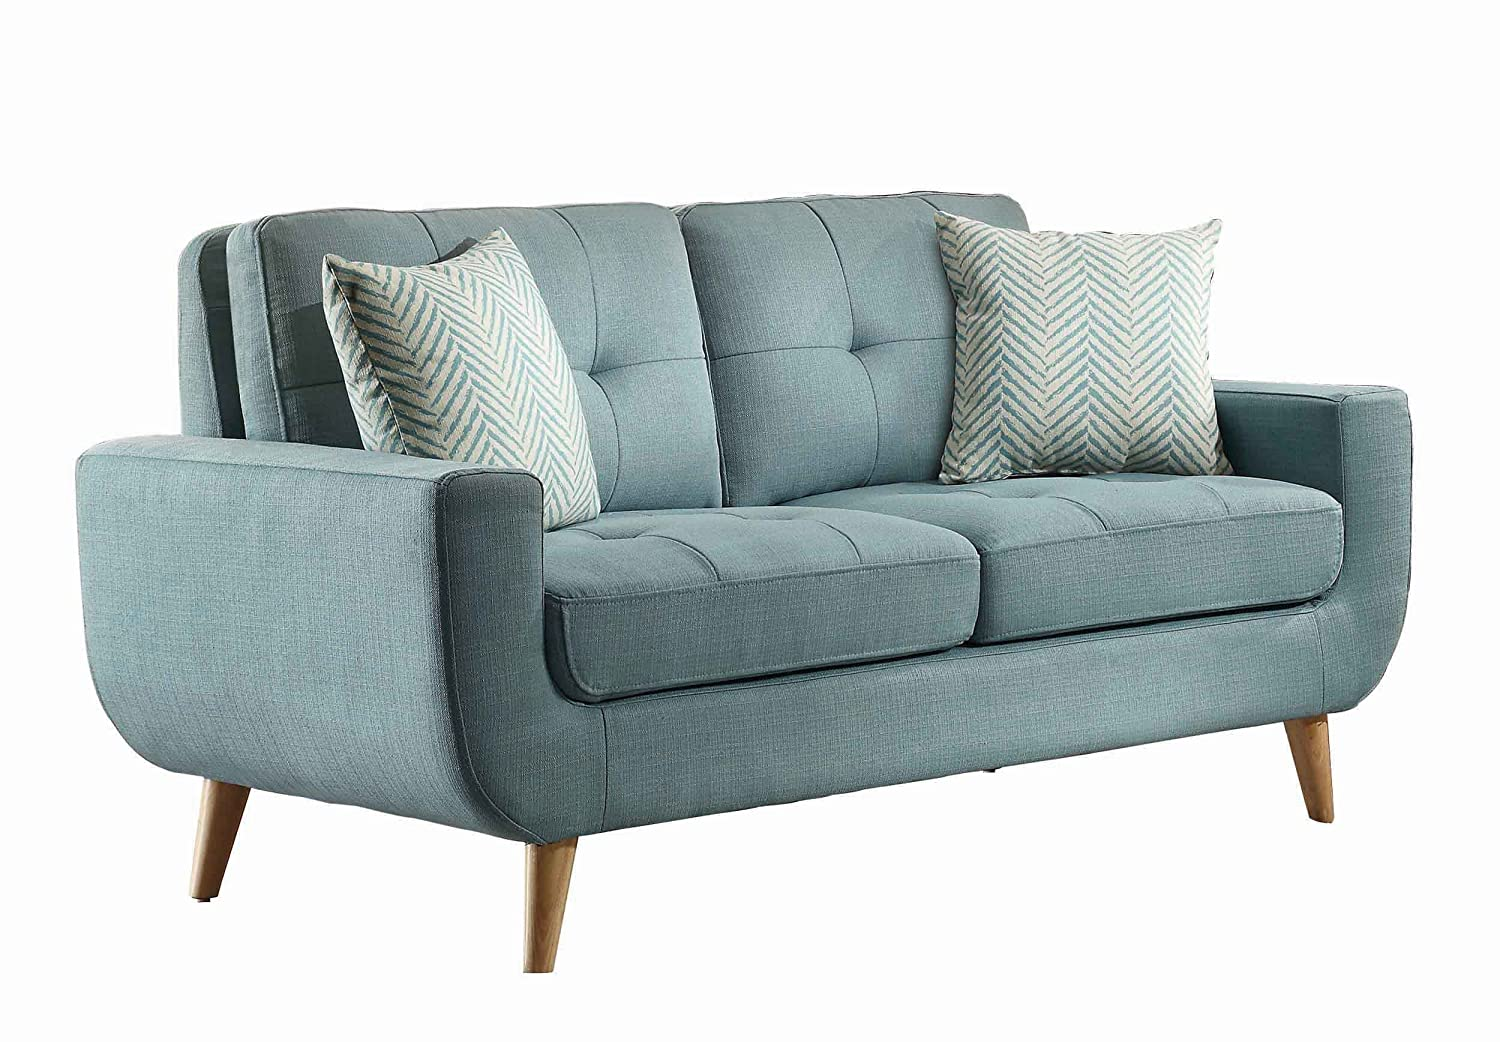 Amazon.com: Homelegance Deryn Mid Century Modern Loveseat With Tufted Back  And Two Herringbone Throw Pillows, Teal: Kitchen U0026 Dining